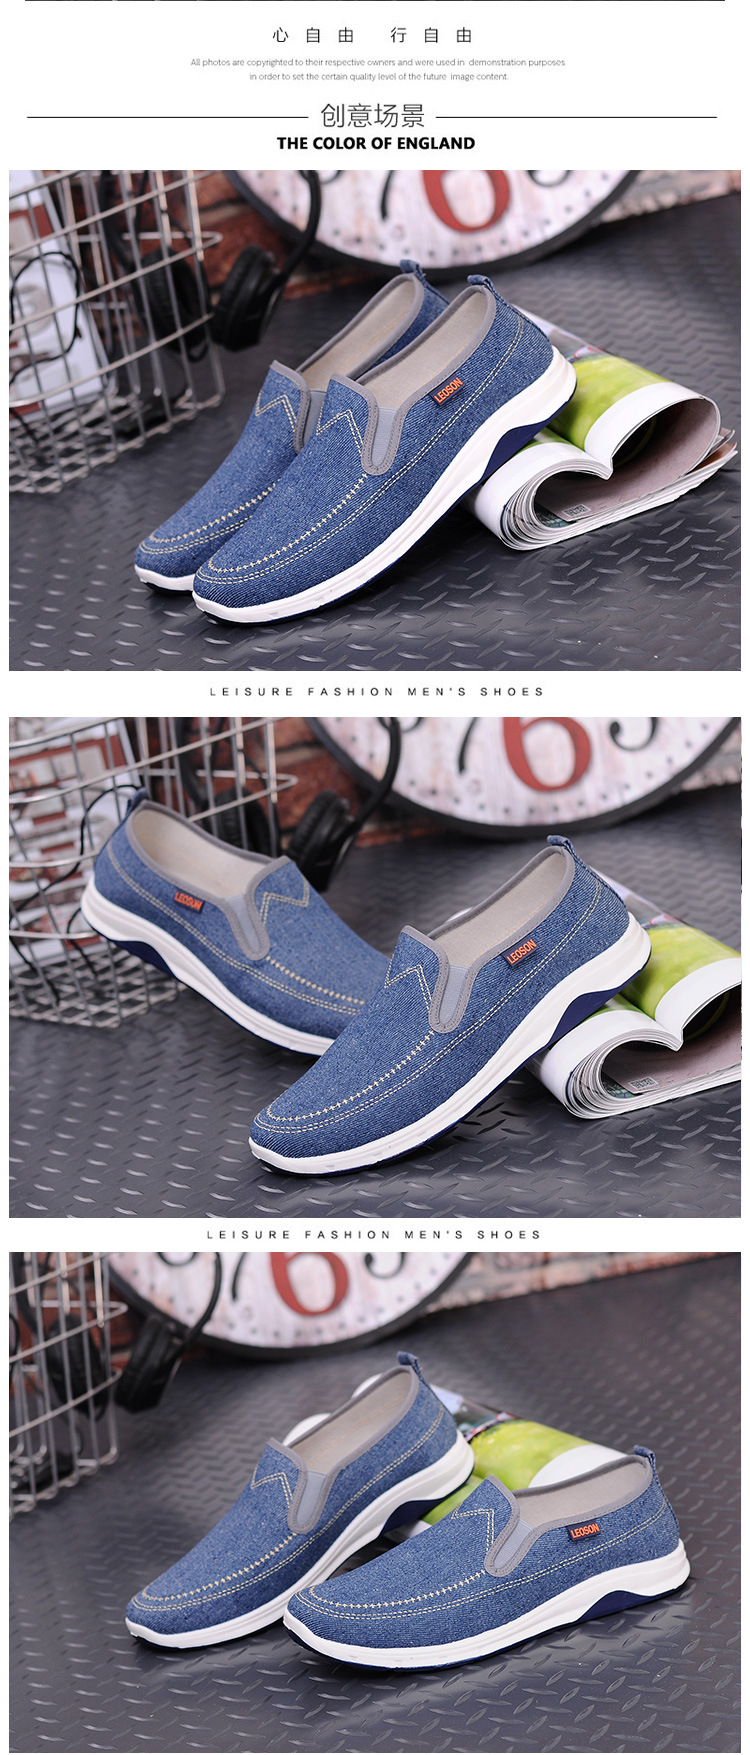 Buy New Arrival Import Shoes For Men And Women Casual Sepatu Korea Pria Sport Koc 2 Pilihan Denim